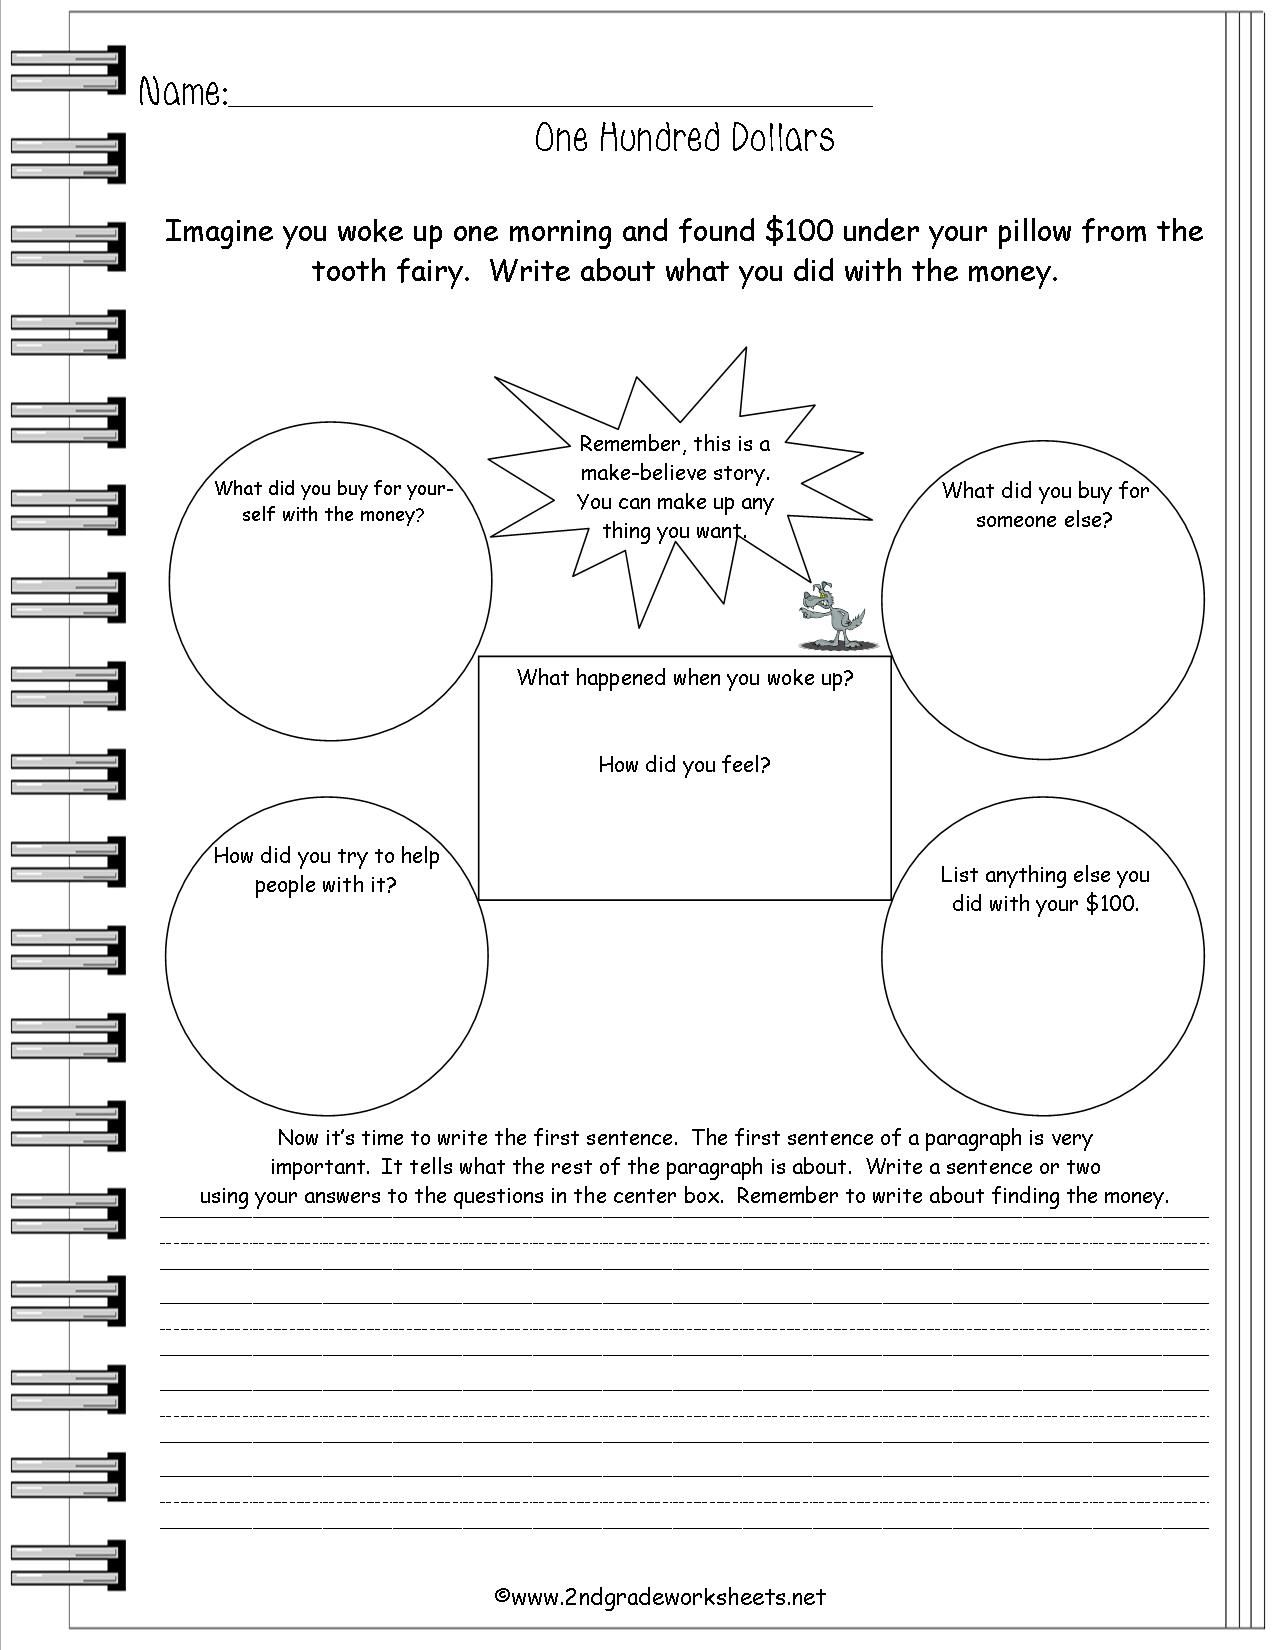 Pin By Teri Palson On Gr 3 Writing With Images